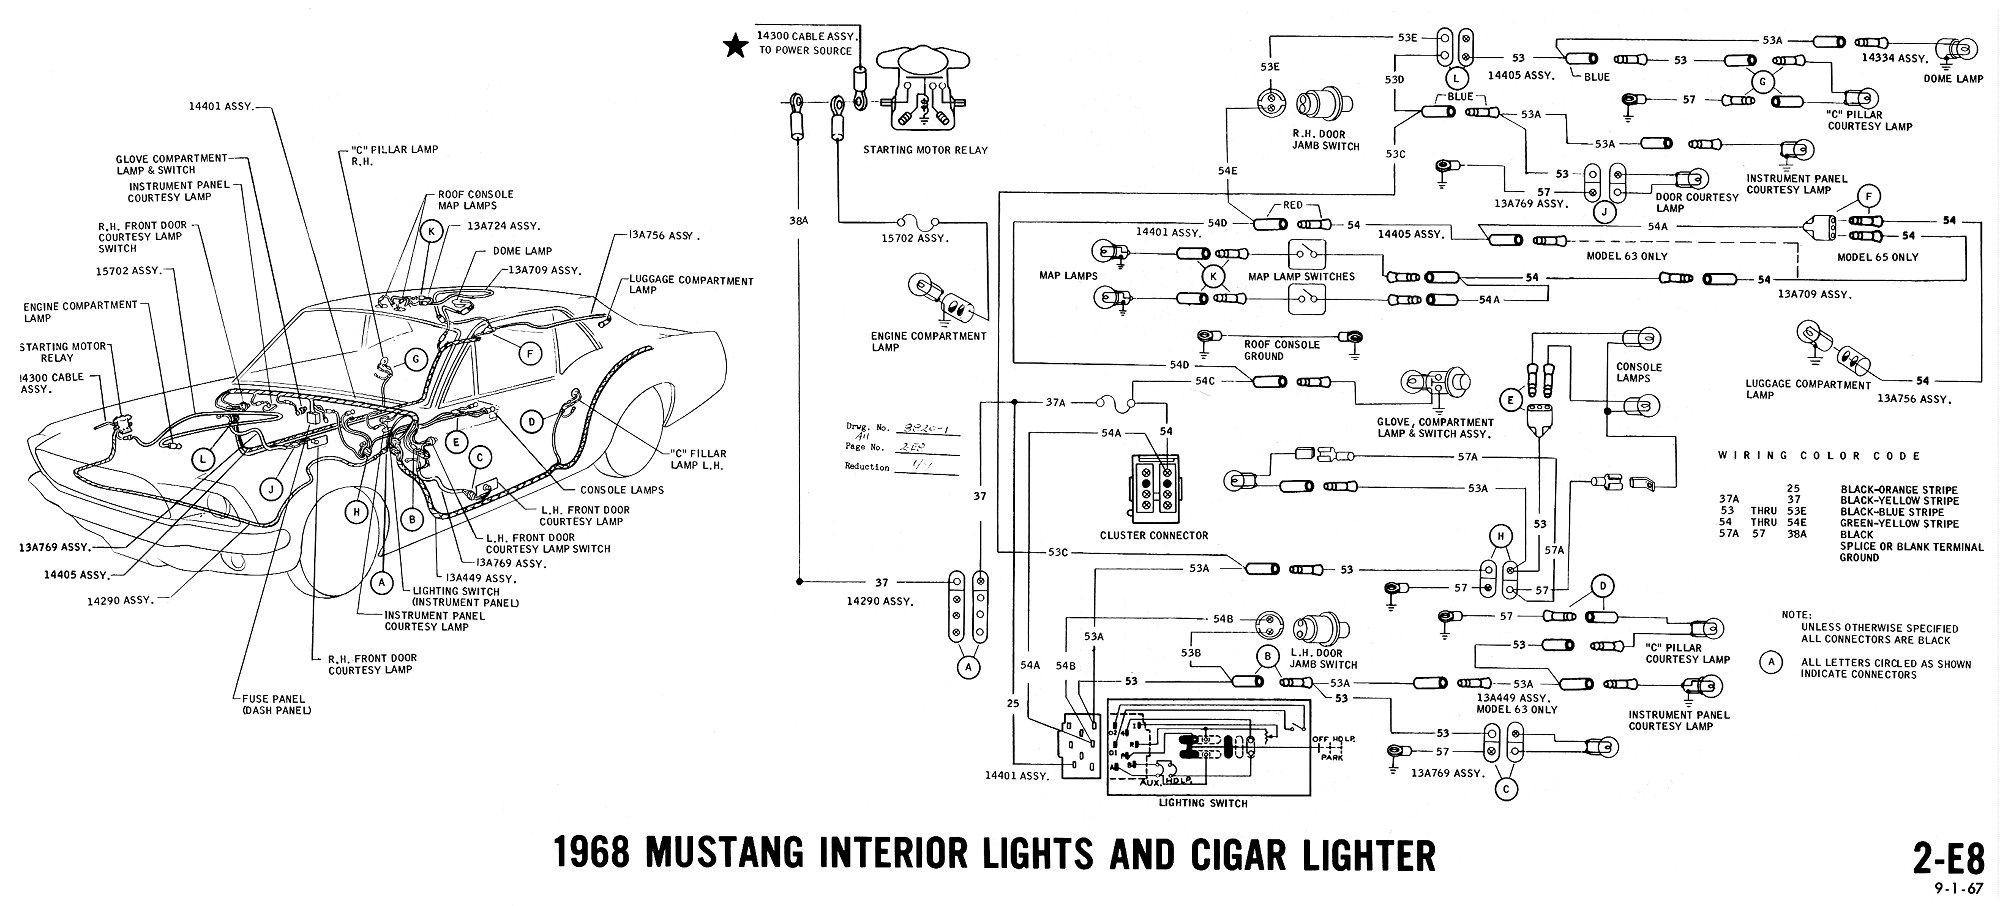 E8 1968 mustang wiring diagrams evolving software 2007 Mustang Wiring Diagram at gsmportal.co